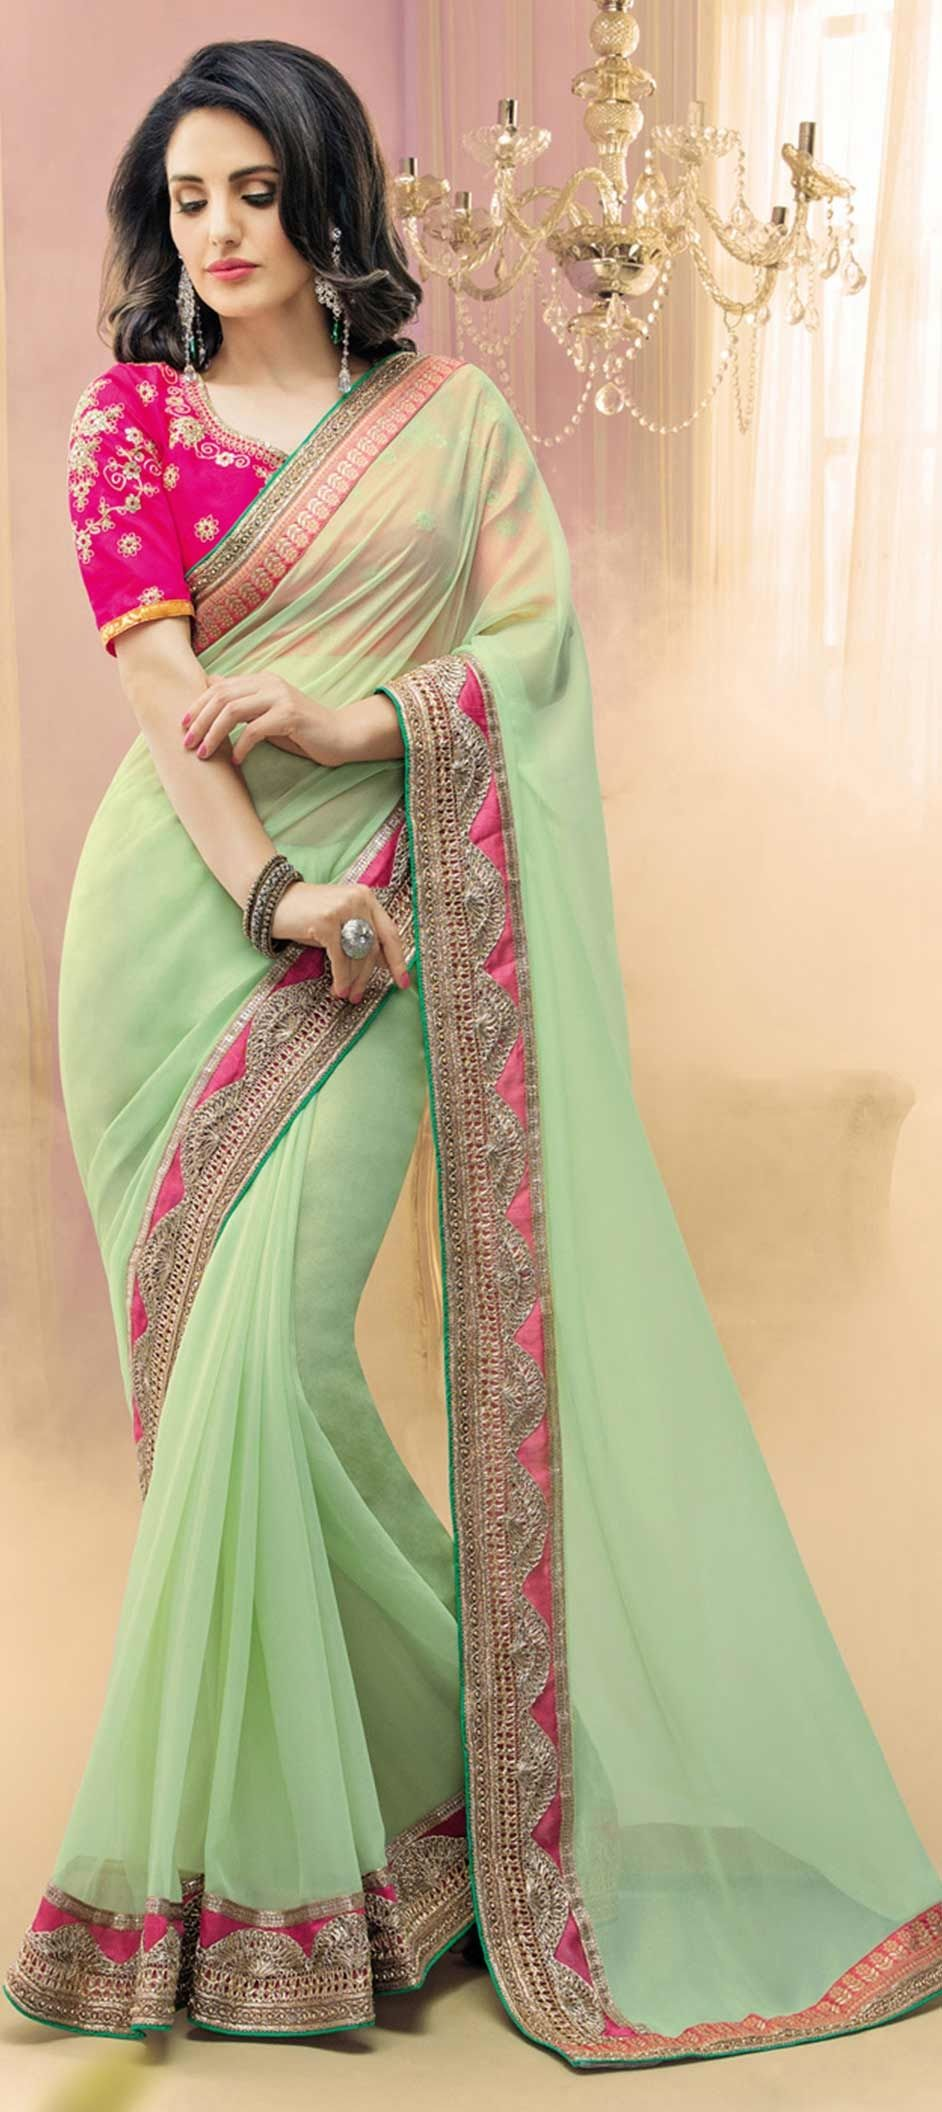 4665cb87c5 755734 Green color family Embroidered Sarees, Party Wear Sarees in Faux  Georgette, Shimmer fabric with Border, Machine Embroidery, Stone, Thread,  ...